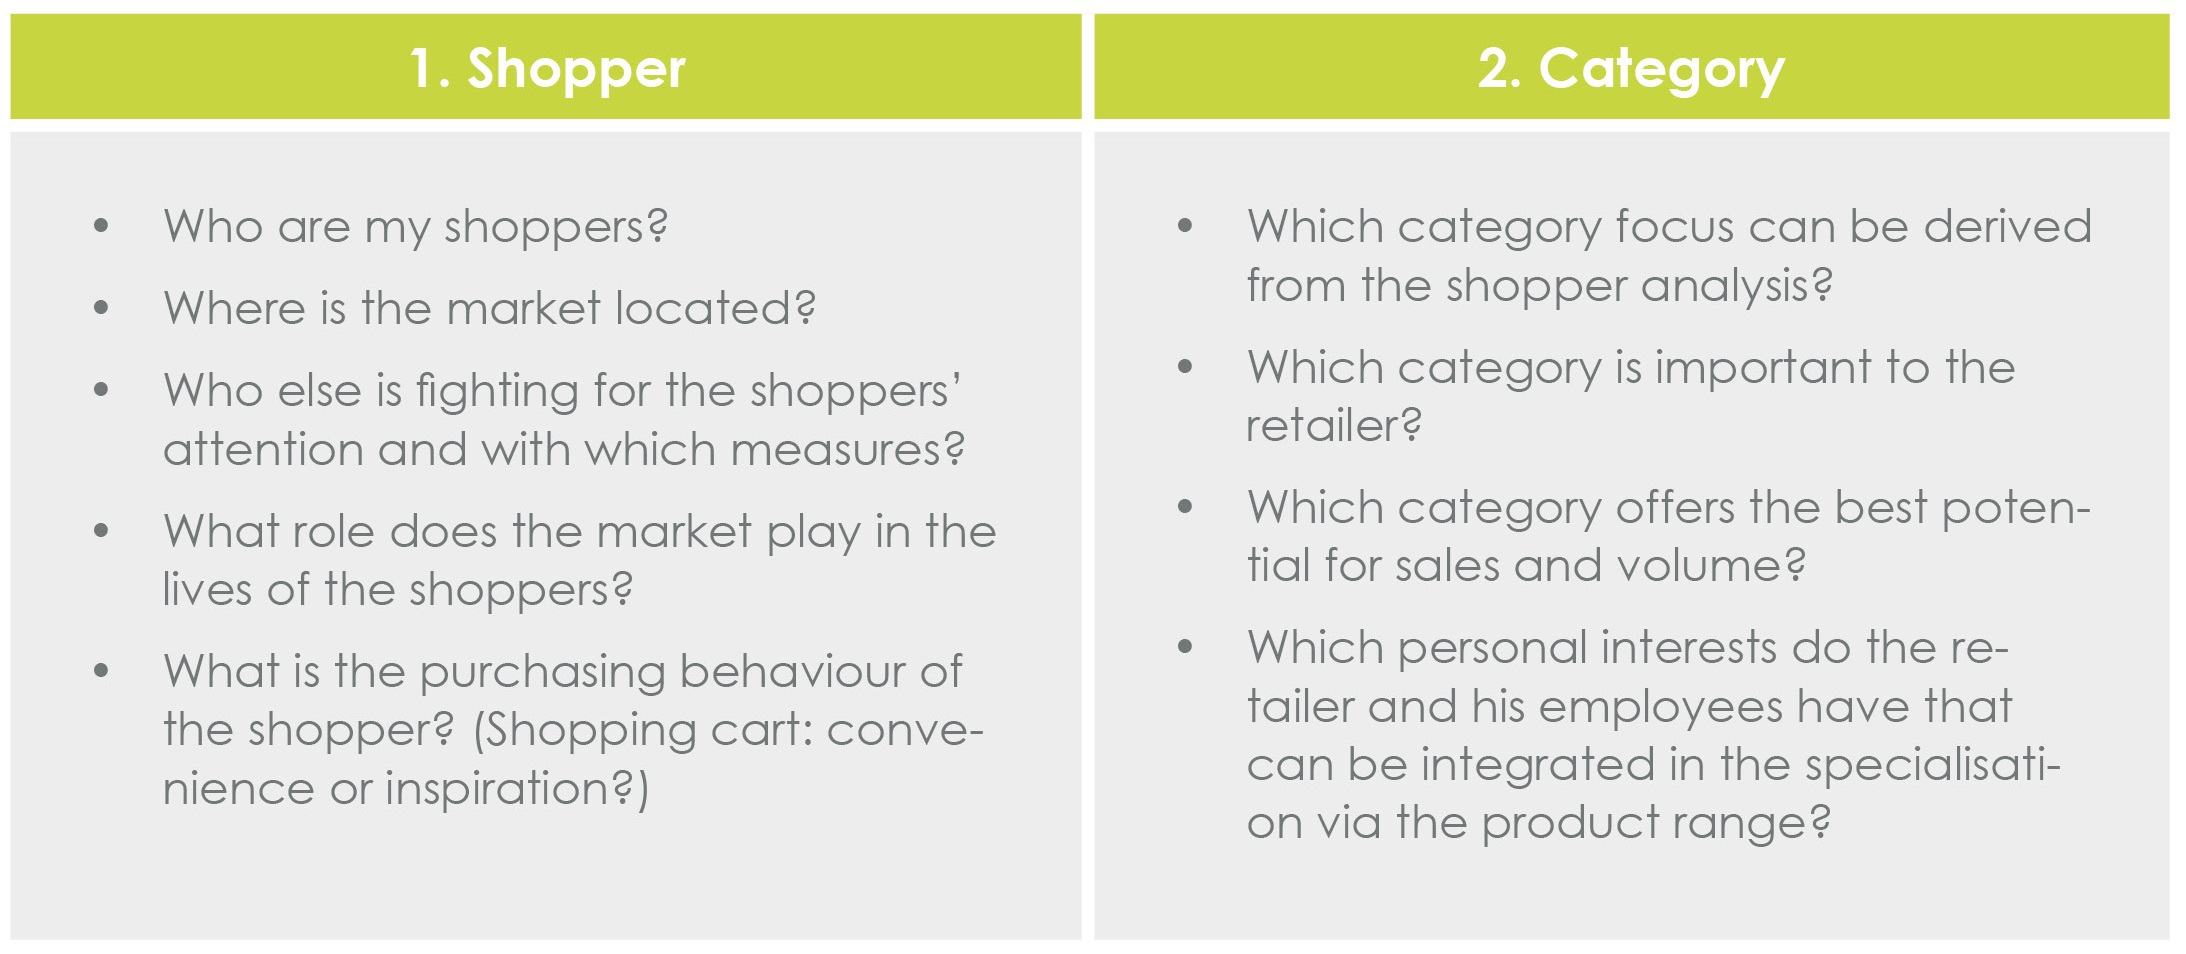 Shopper and Category.